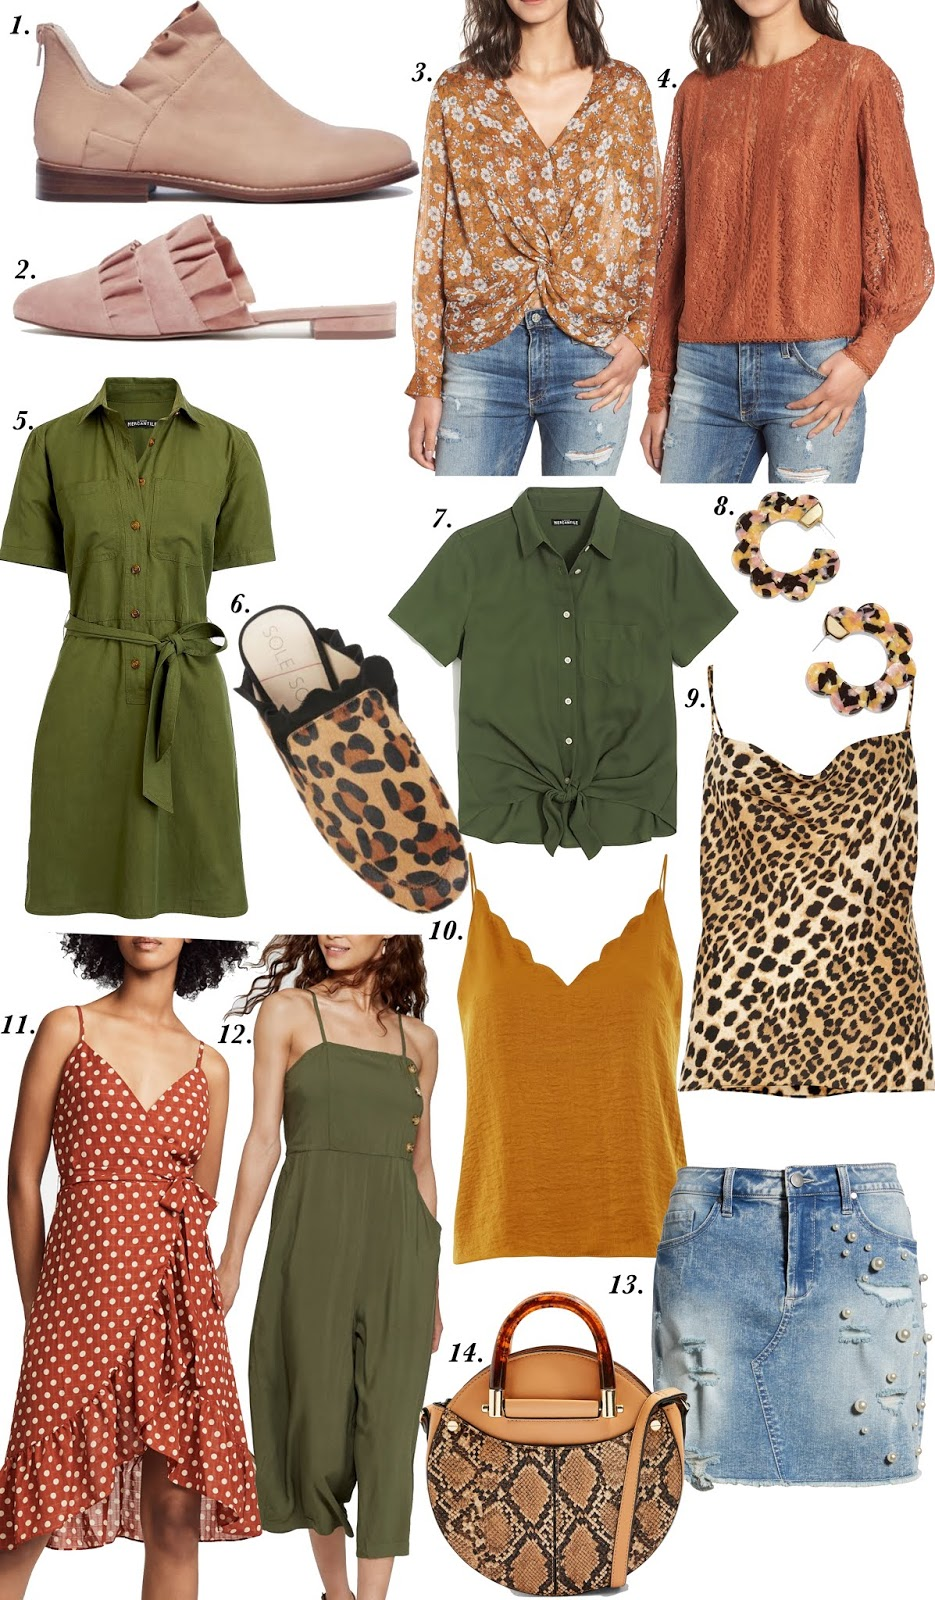 Pre-Fall Favorites: Ruffles, Leopard, Olive Green & More - All Under $100! - Something Delightful Blog @racheltimmerman